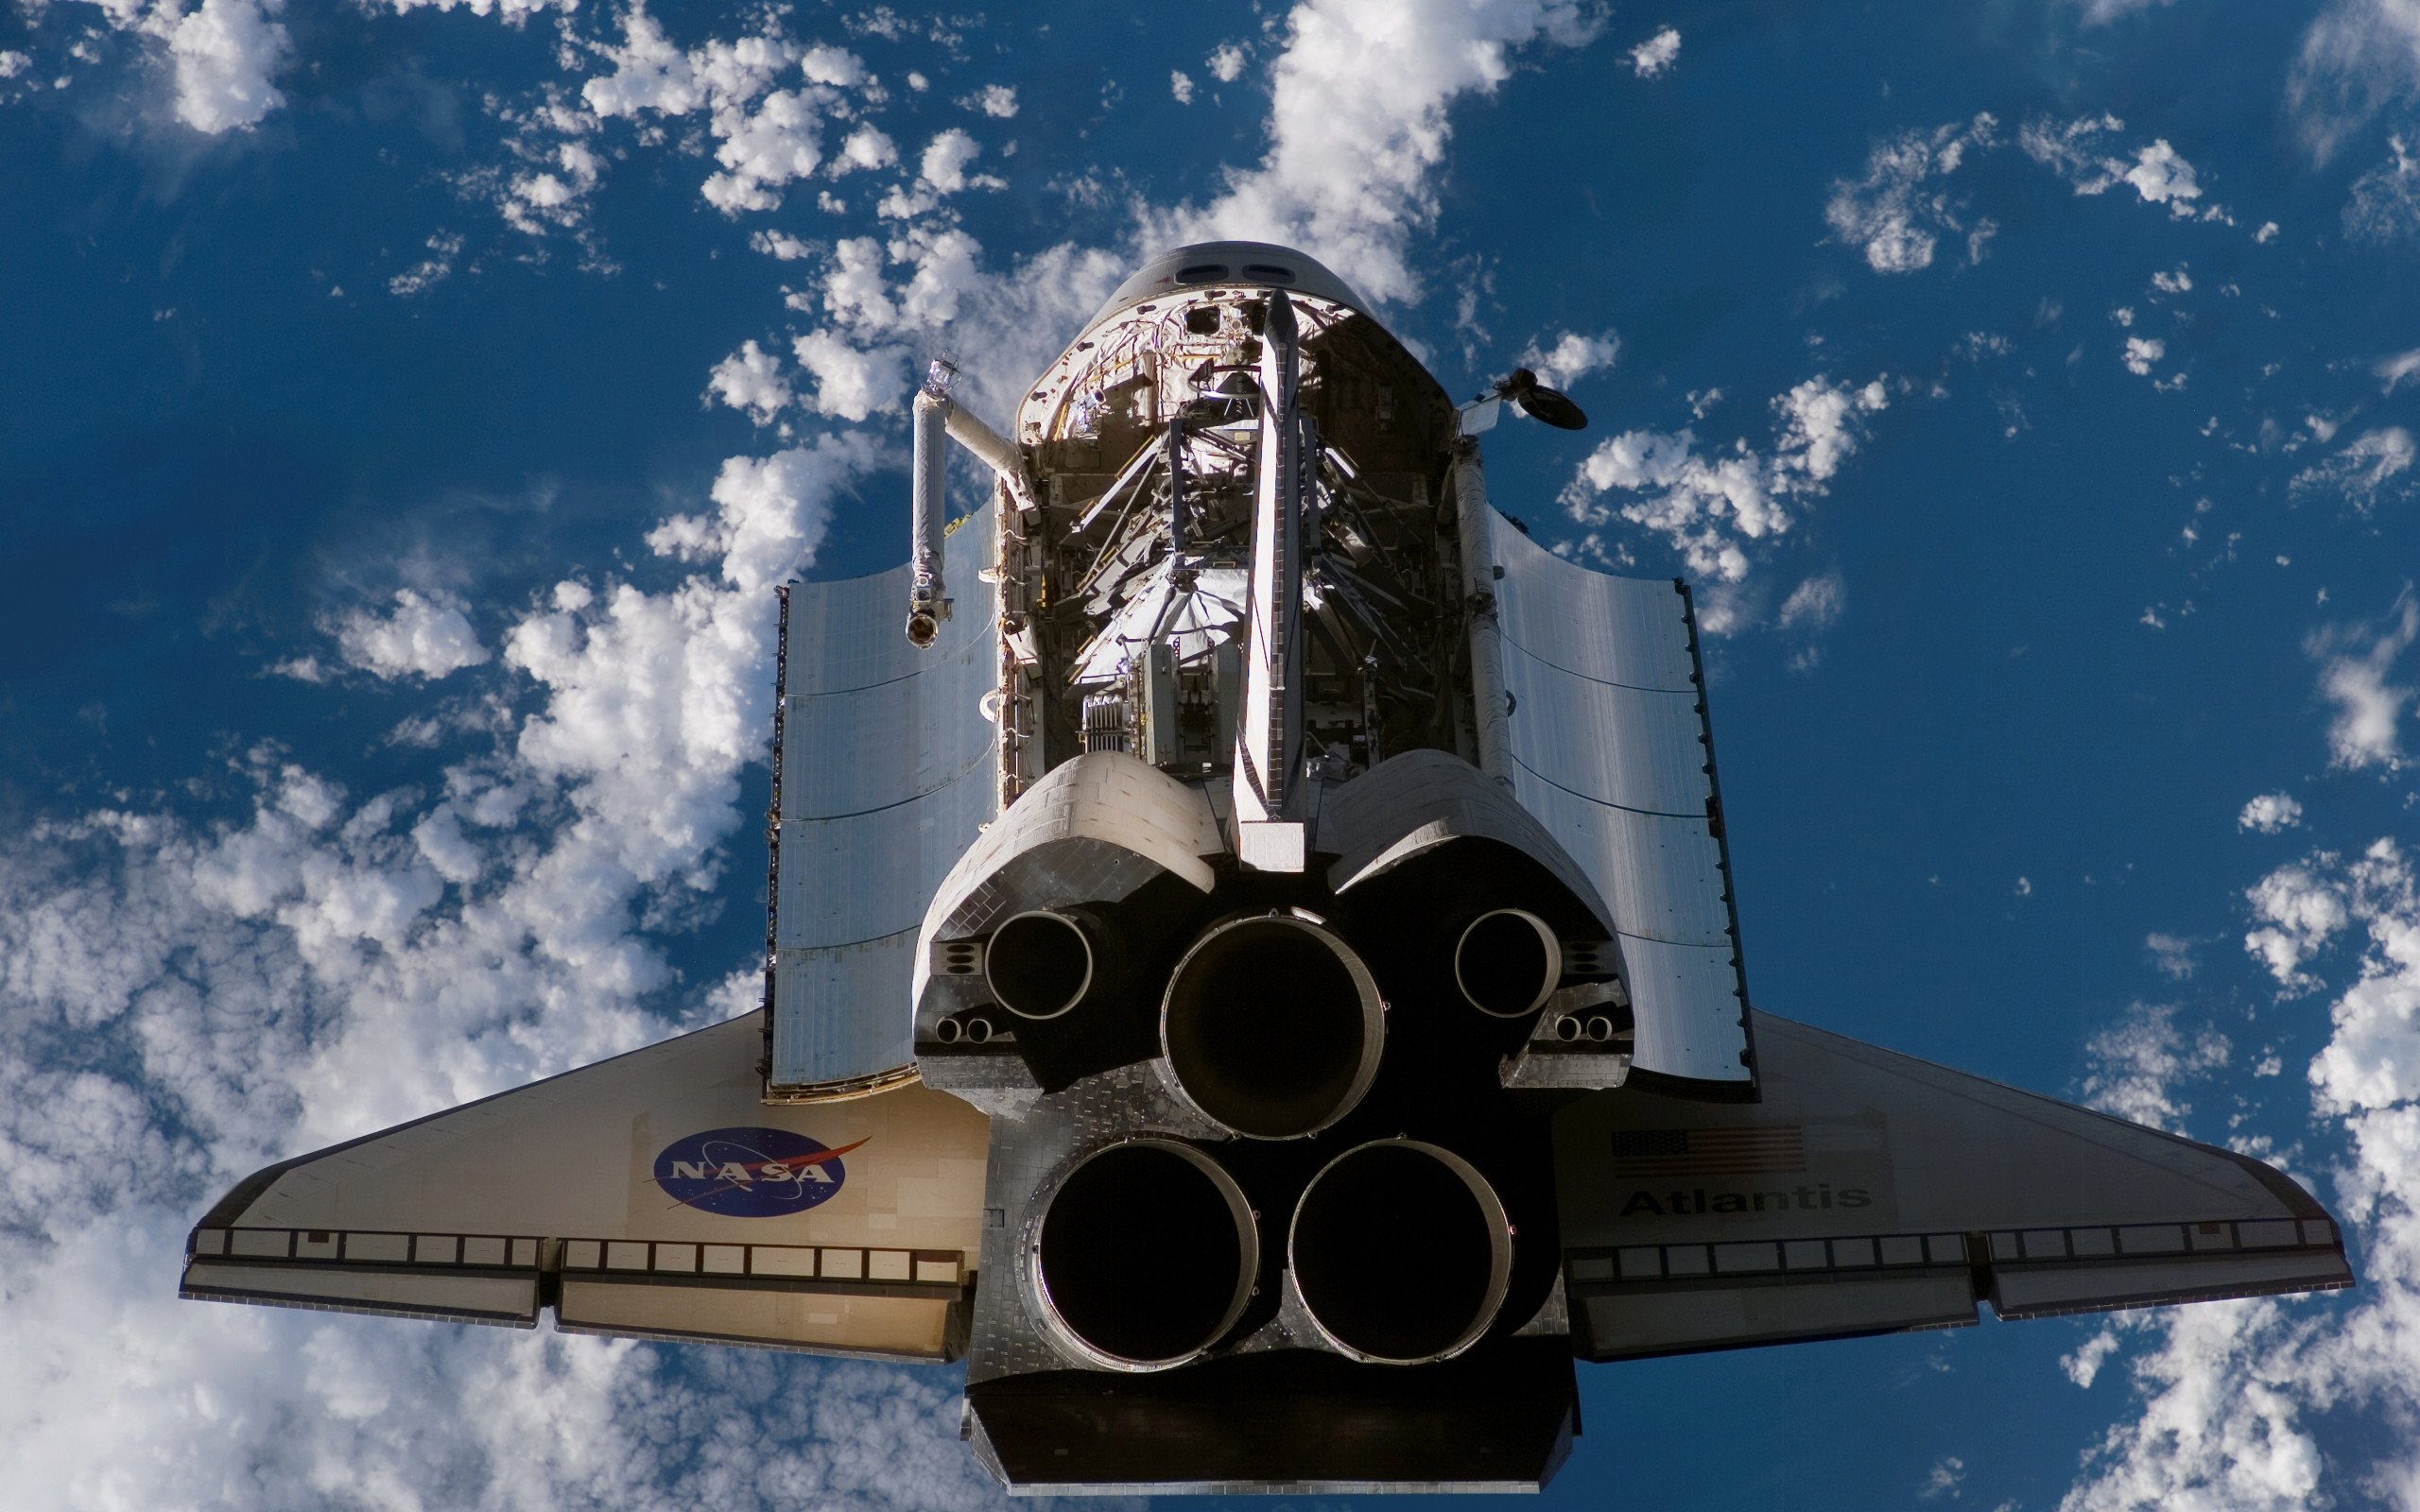 2560x1600 Space Shuttle Wallpapers Free ...